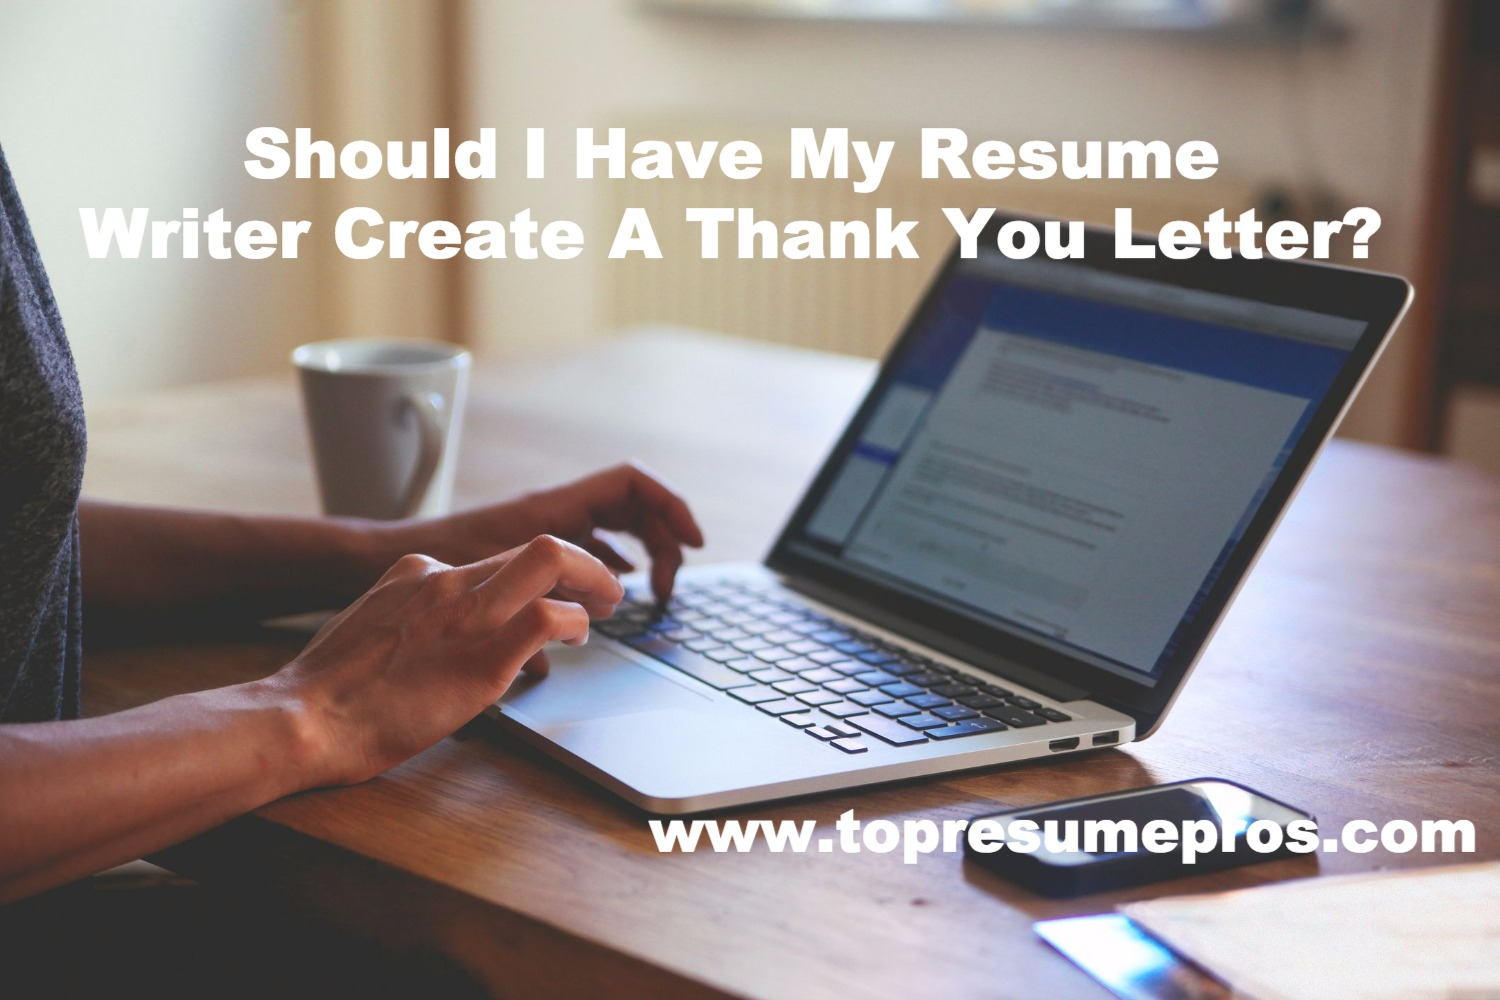 Should I Have My Resume Writer Create A Thank You Letter Ranked